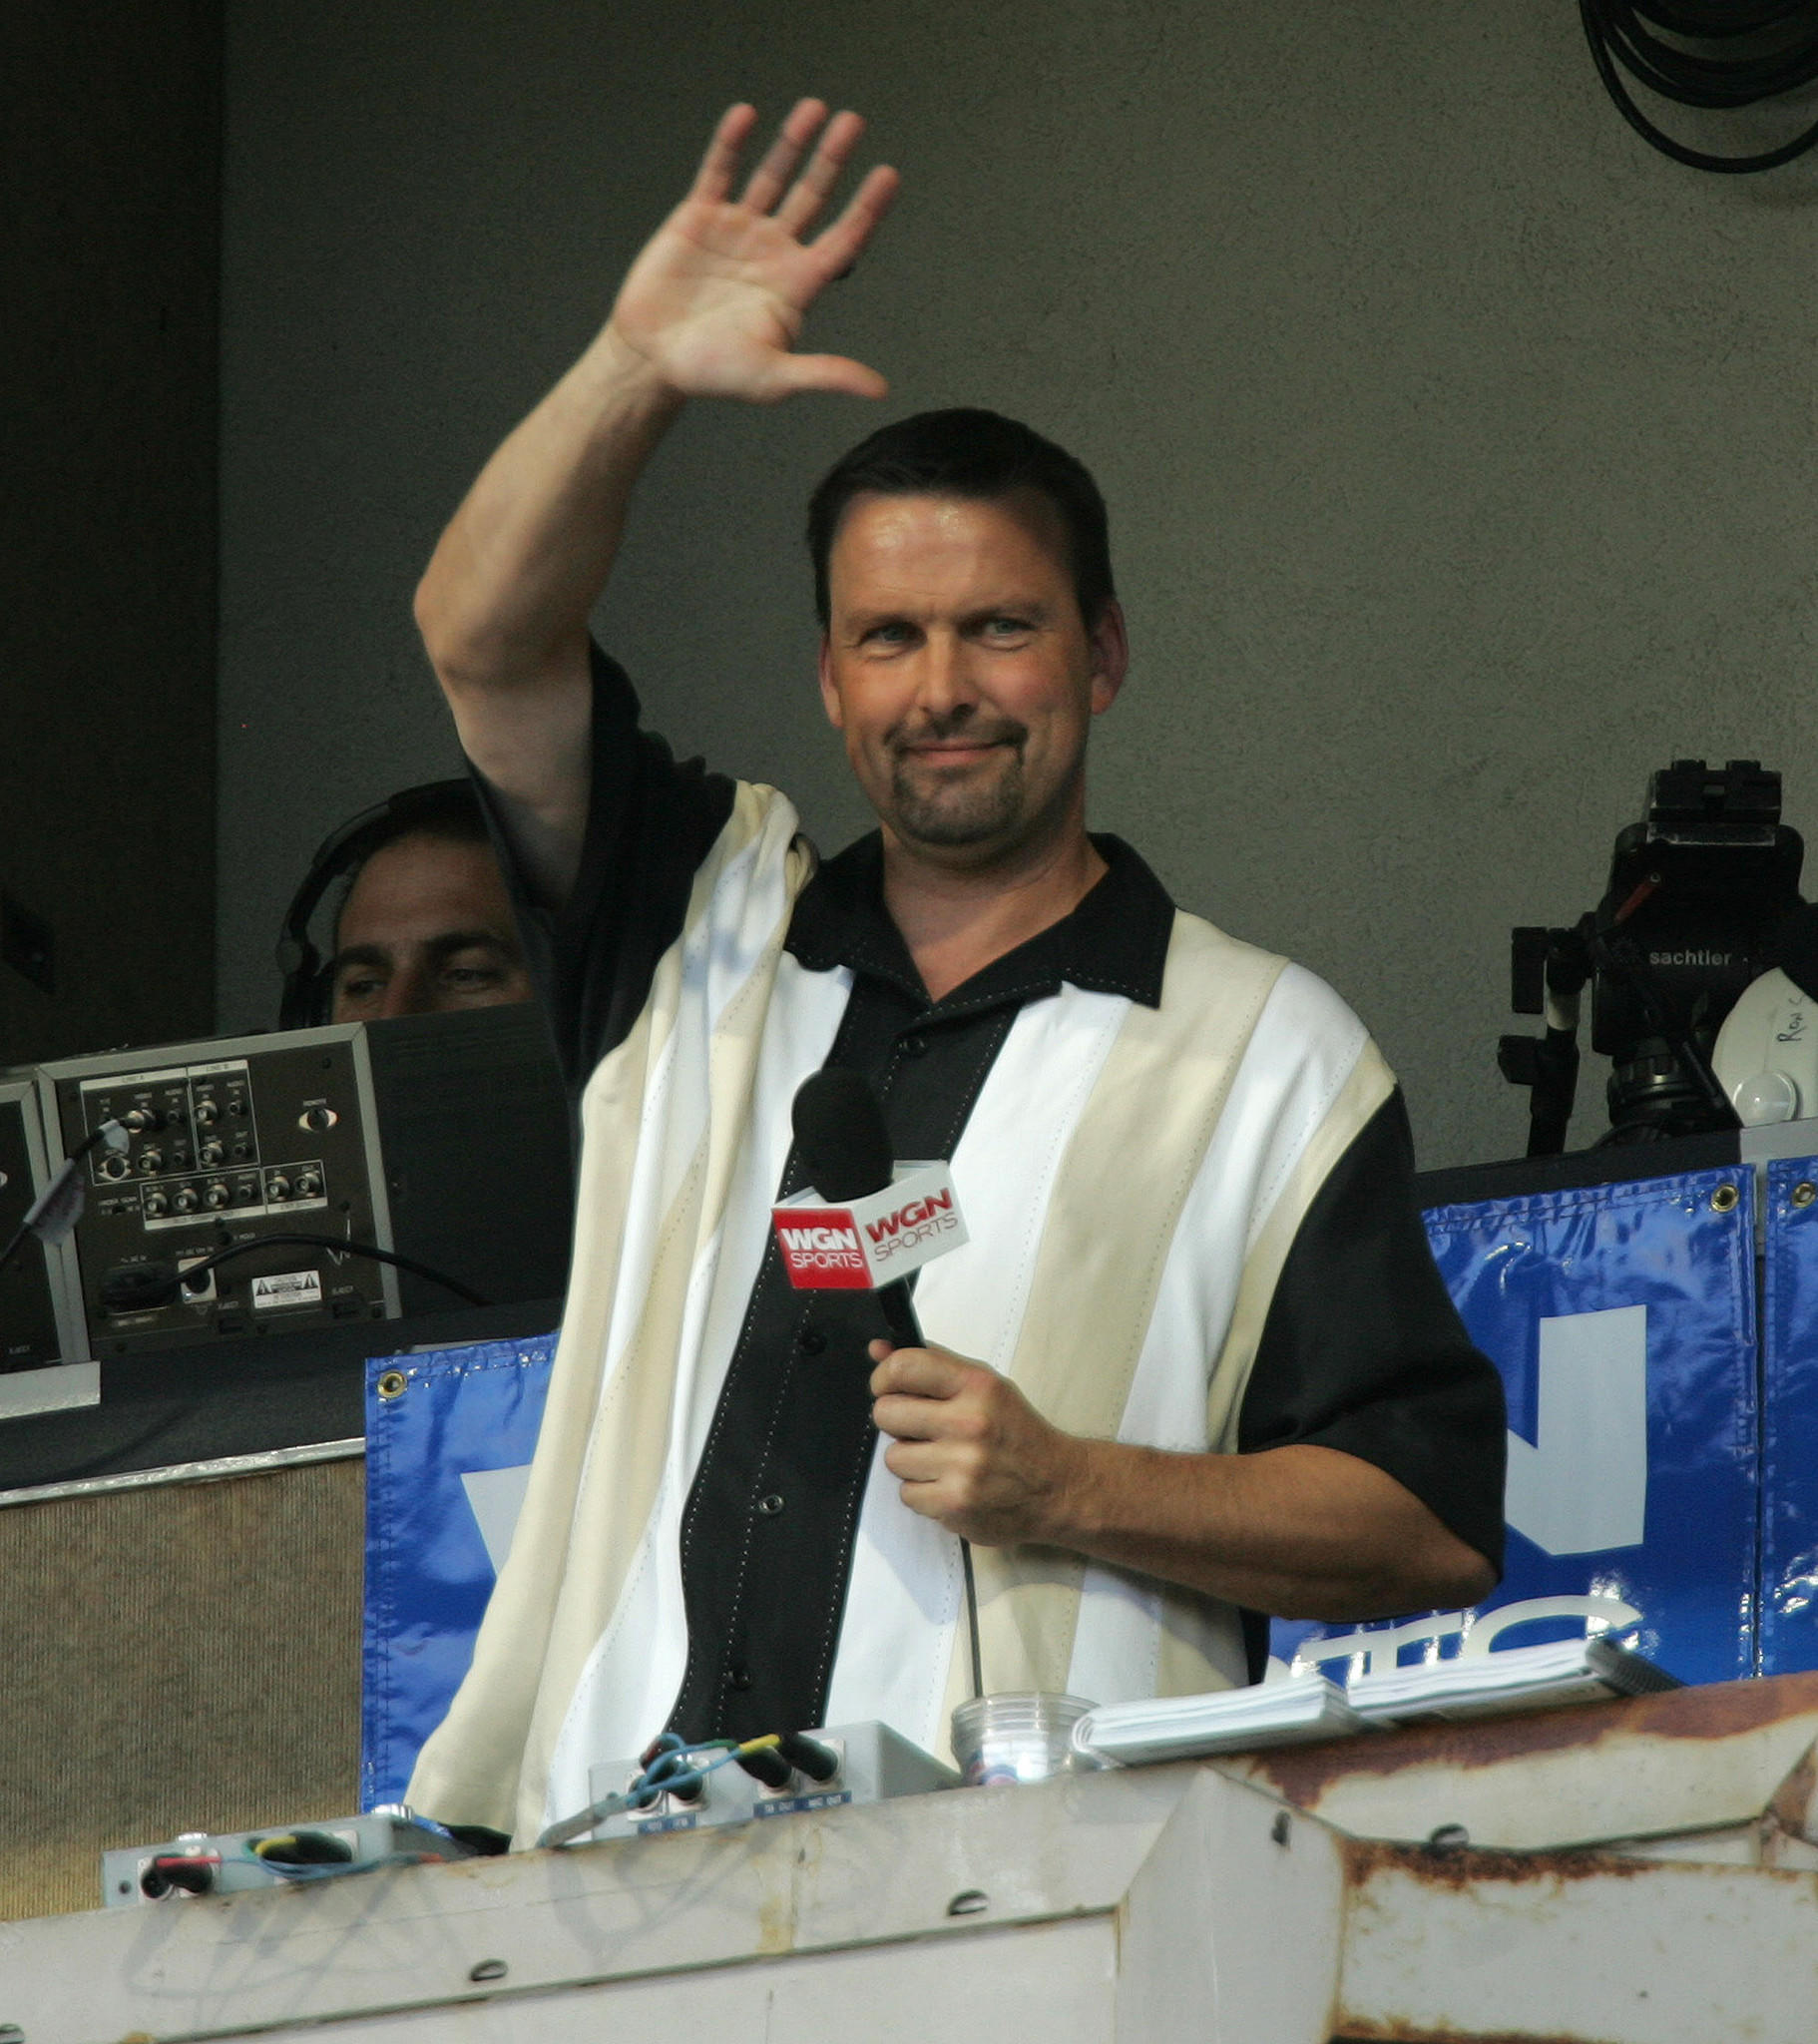 Former Cub great and fan favorite Mark Grace acknowledges the Wrigley Field crowd in the 7th inning.